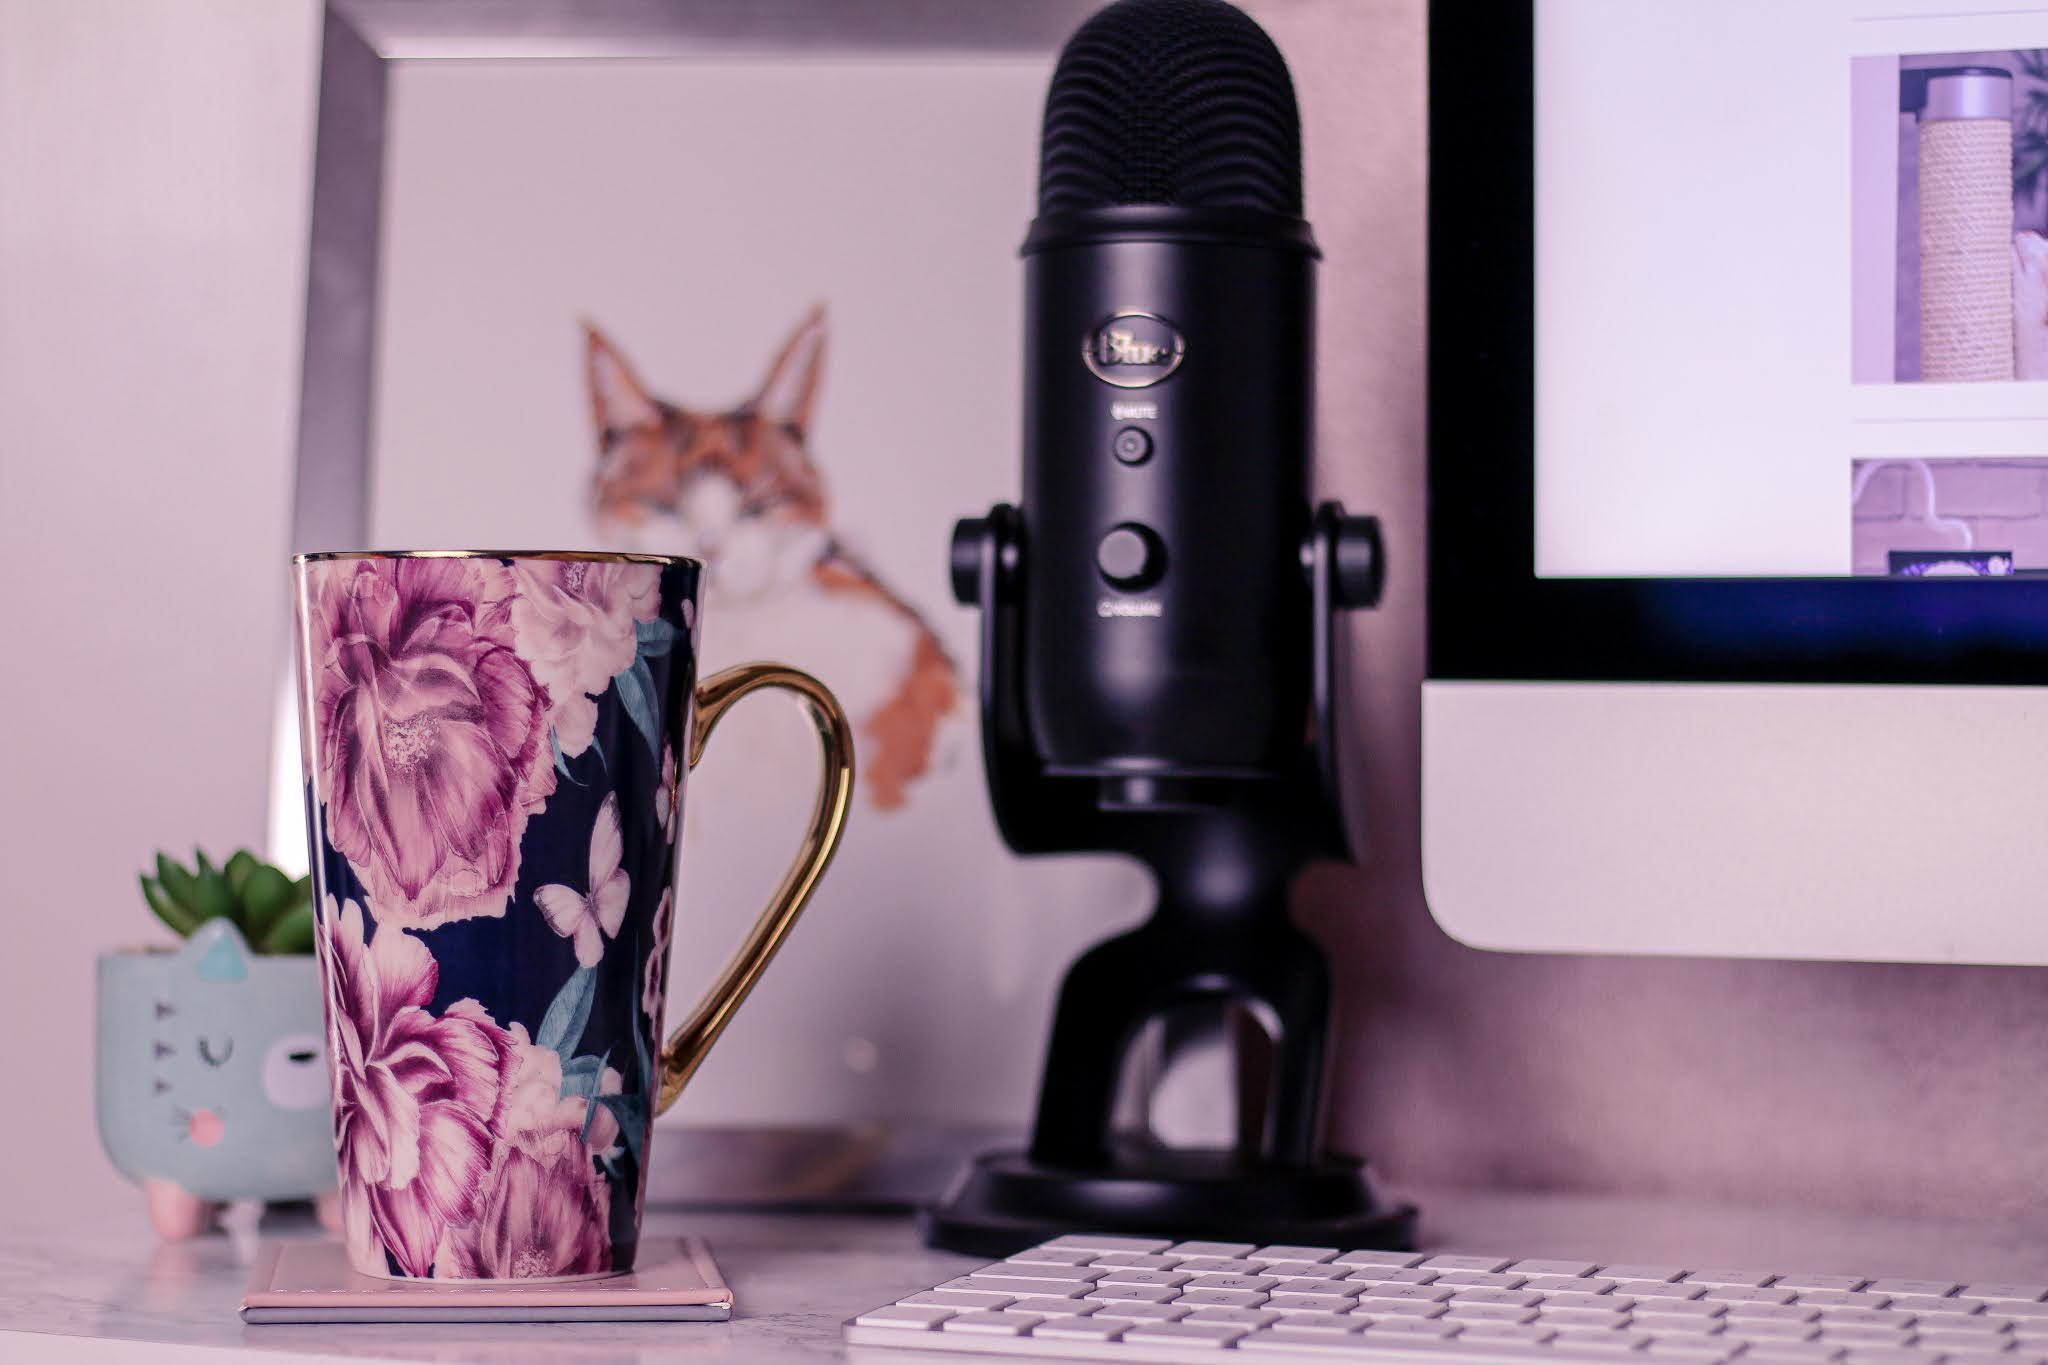 Close up of a flower mug on a white desk with a black blue yetti microphone and cat drawing behind it